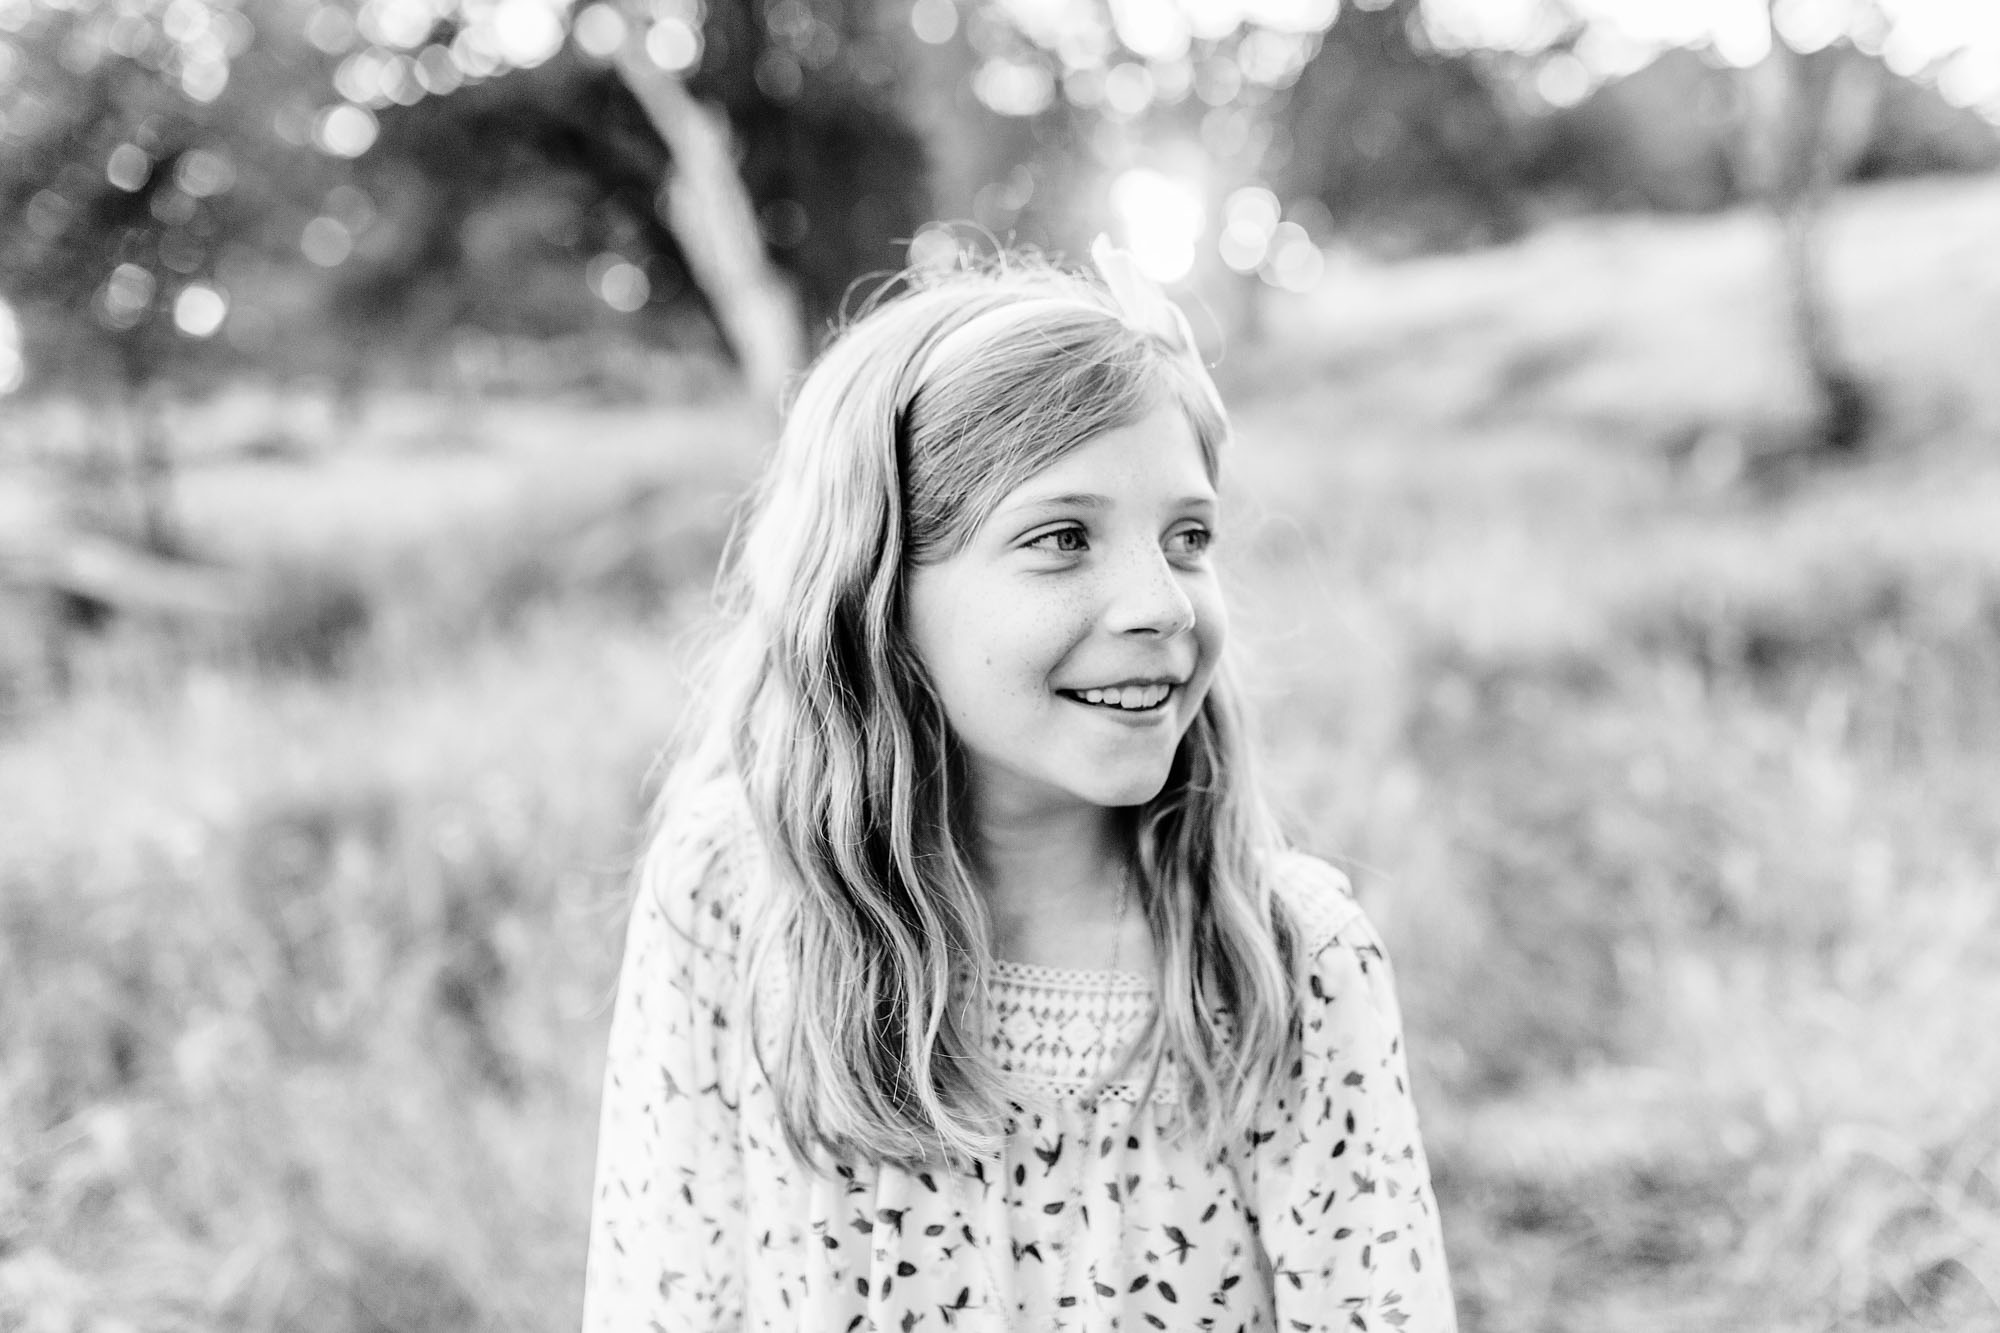 A timeless photo of a young girl taken during family pictures with lifestyle photographer Amy Wright in Roseville, California.